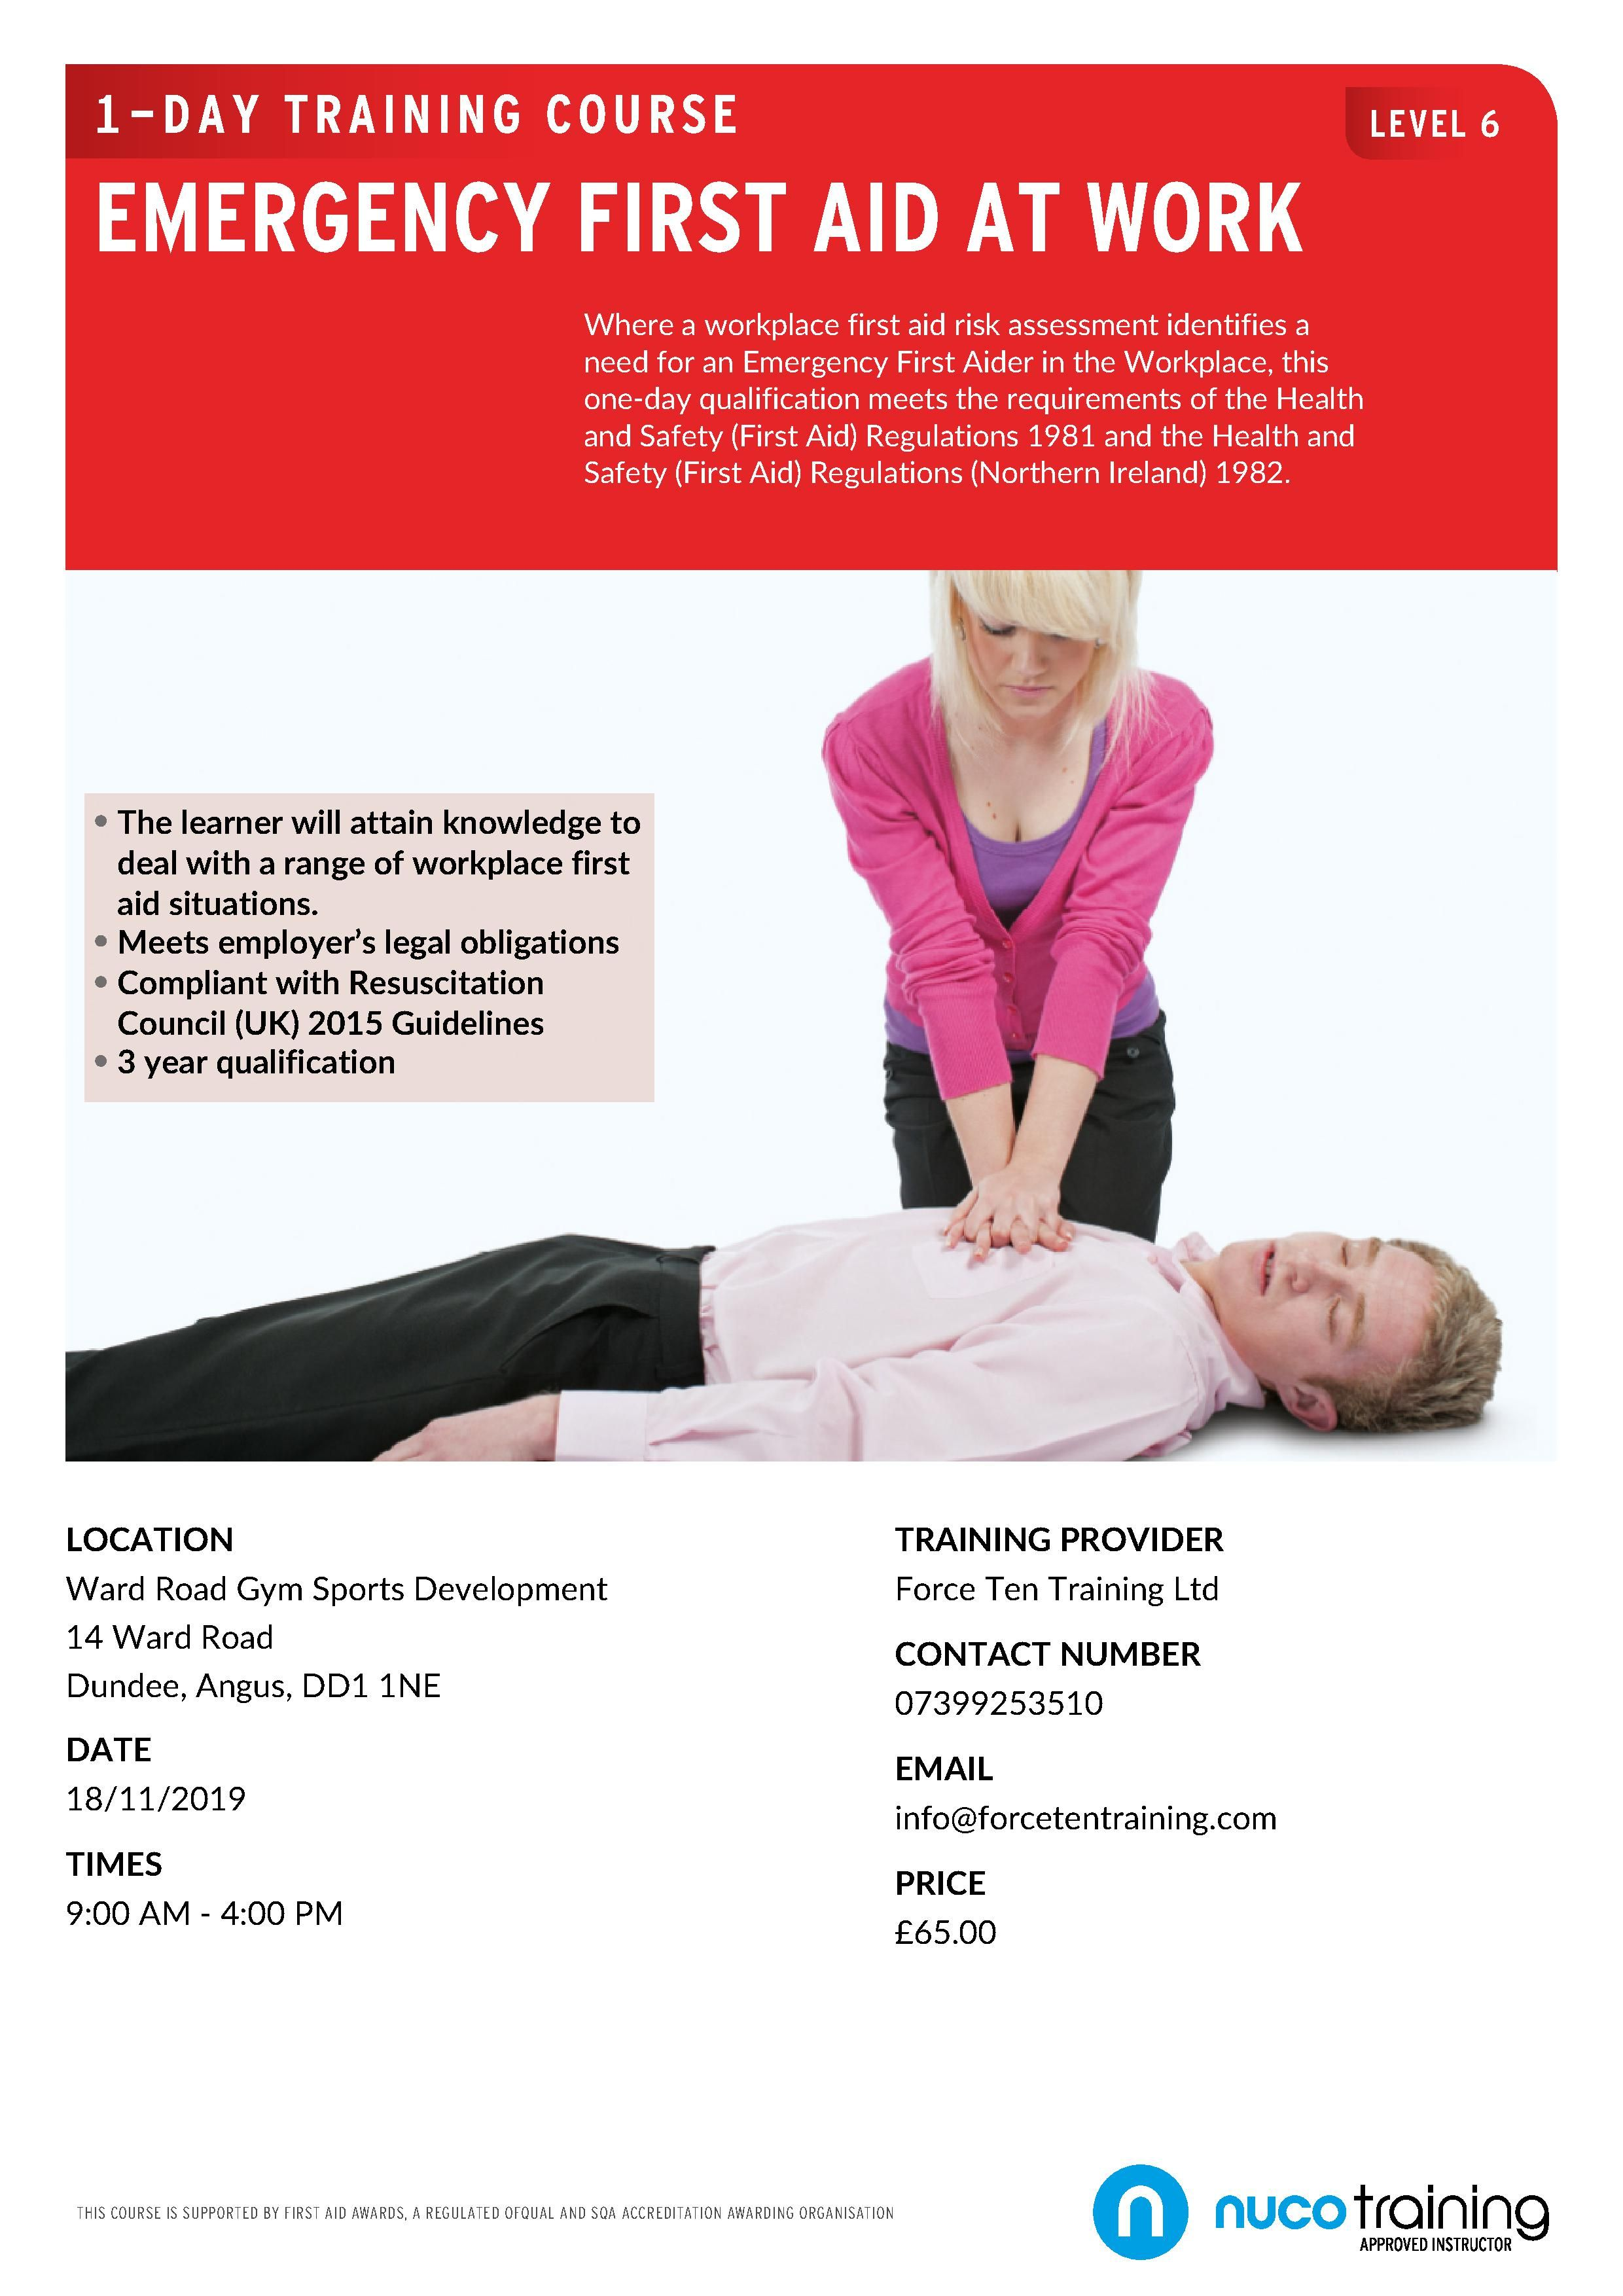 Level 6 efaw dundee safety and first aid cpr training